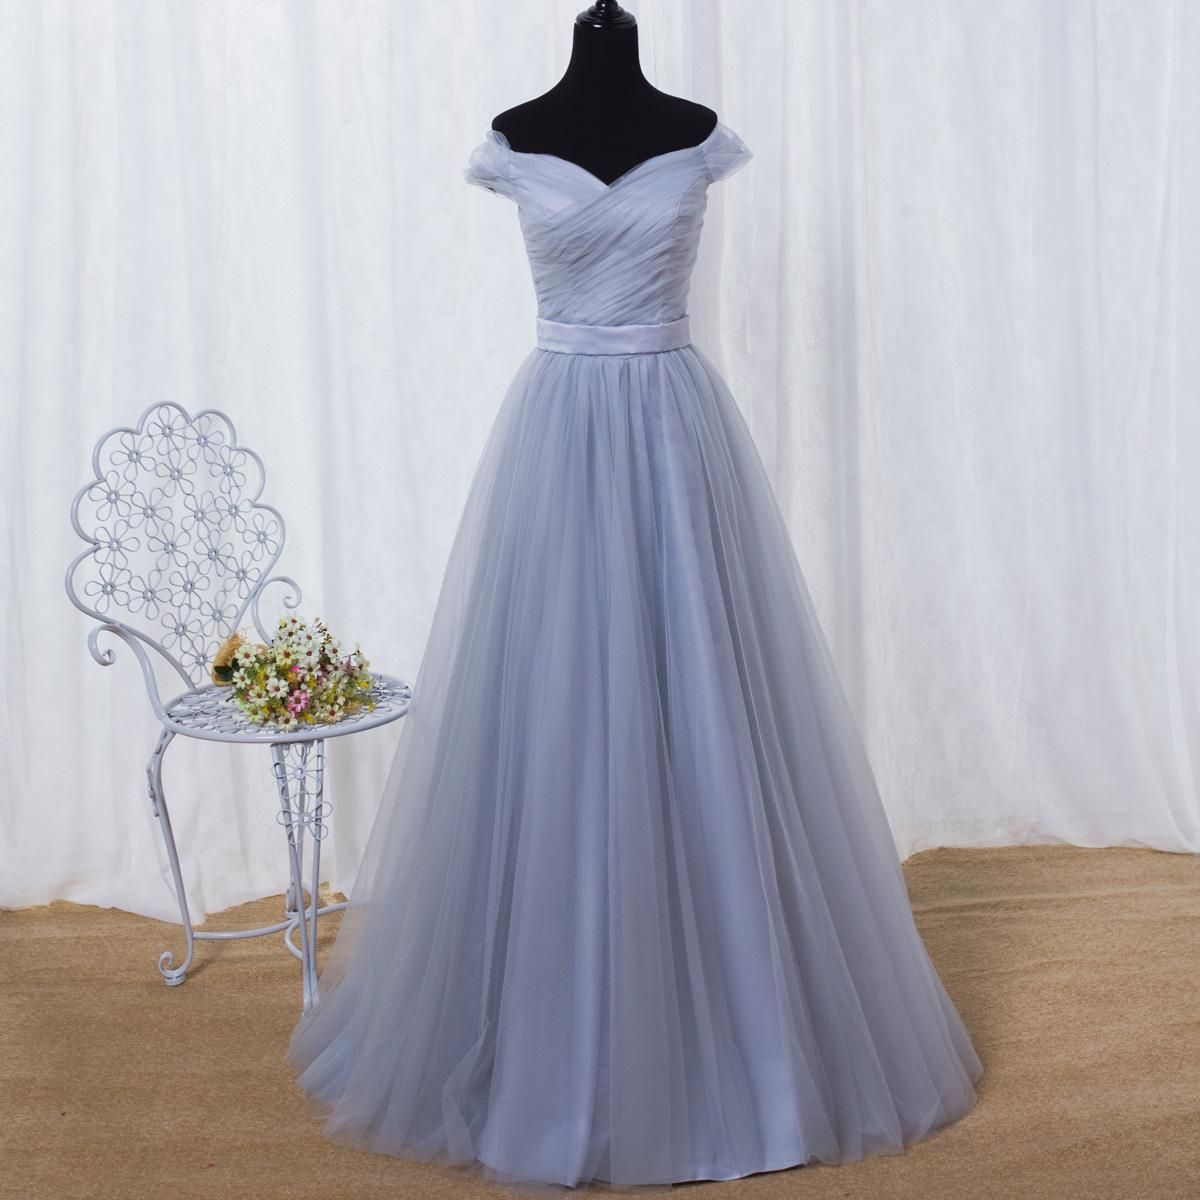 Smoky Gray Bridesmaid Dresses Off Shoulder Lace-up Back Pleats Tulle ...